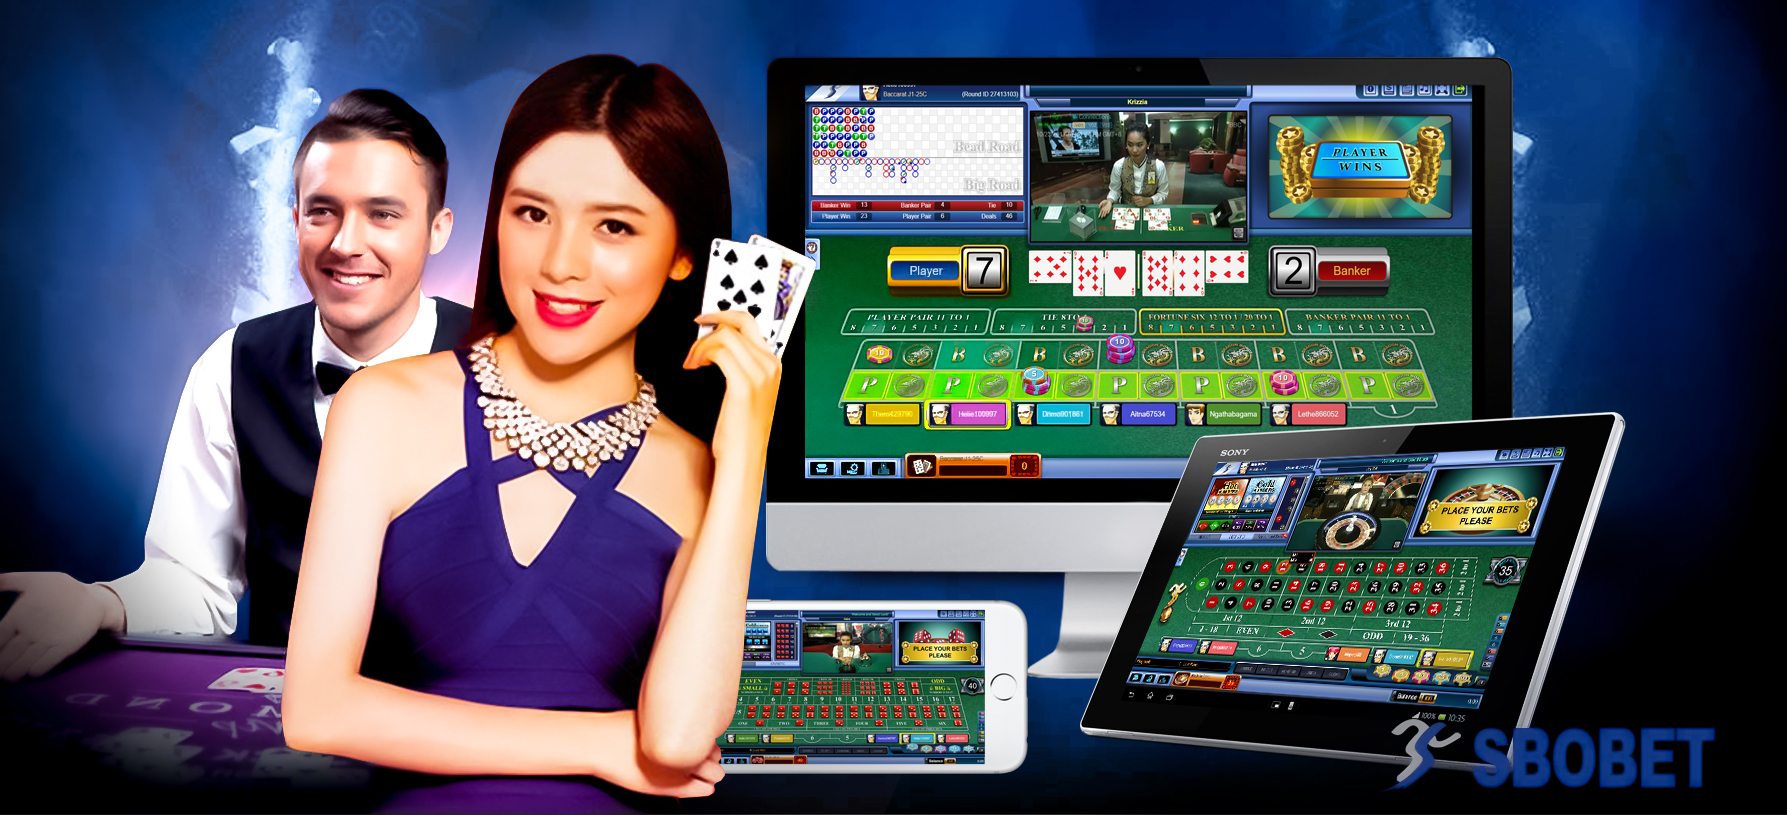 If I Go For No Deposit Casino Bonus?